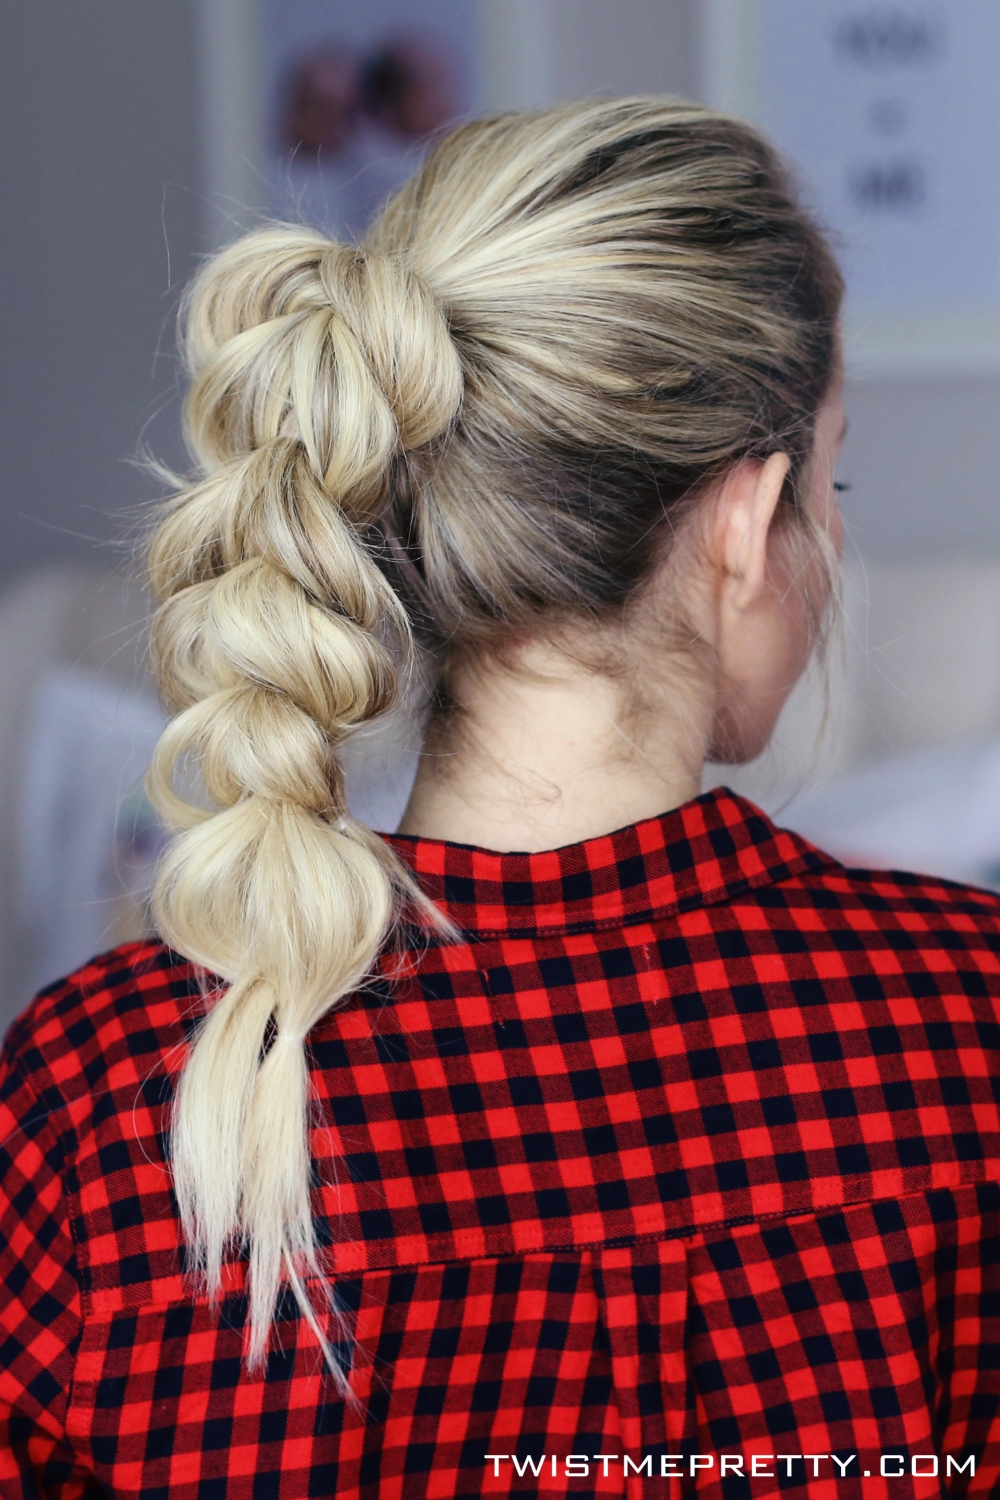 4 Hairstyles for Dirty Hair   Twist Me Pretty